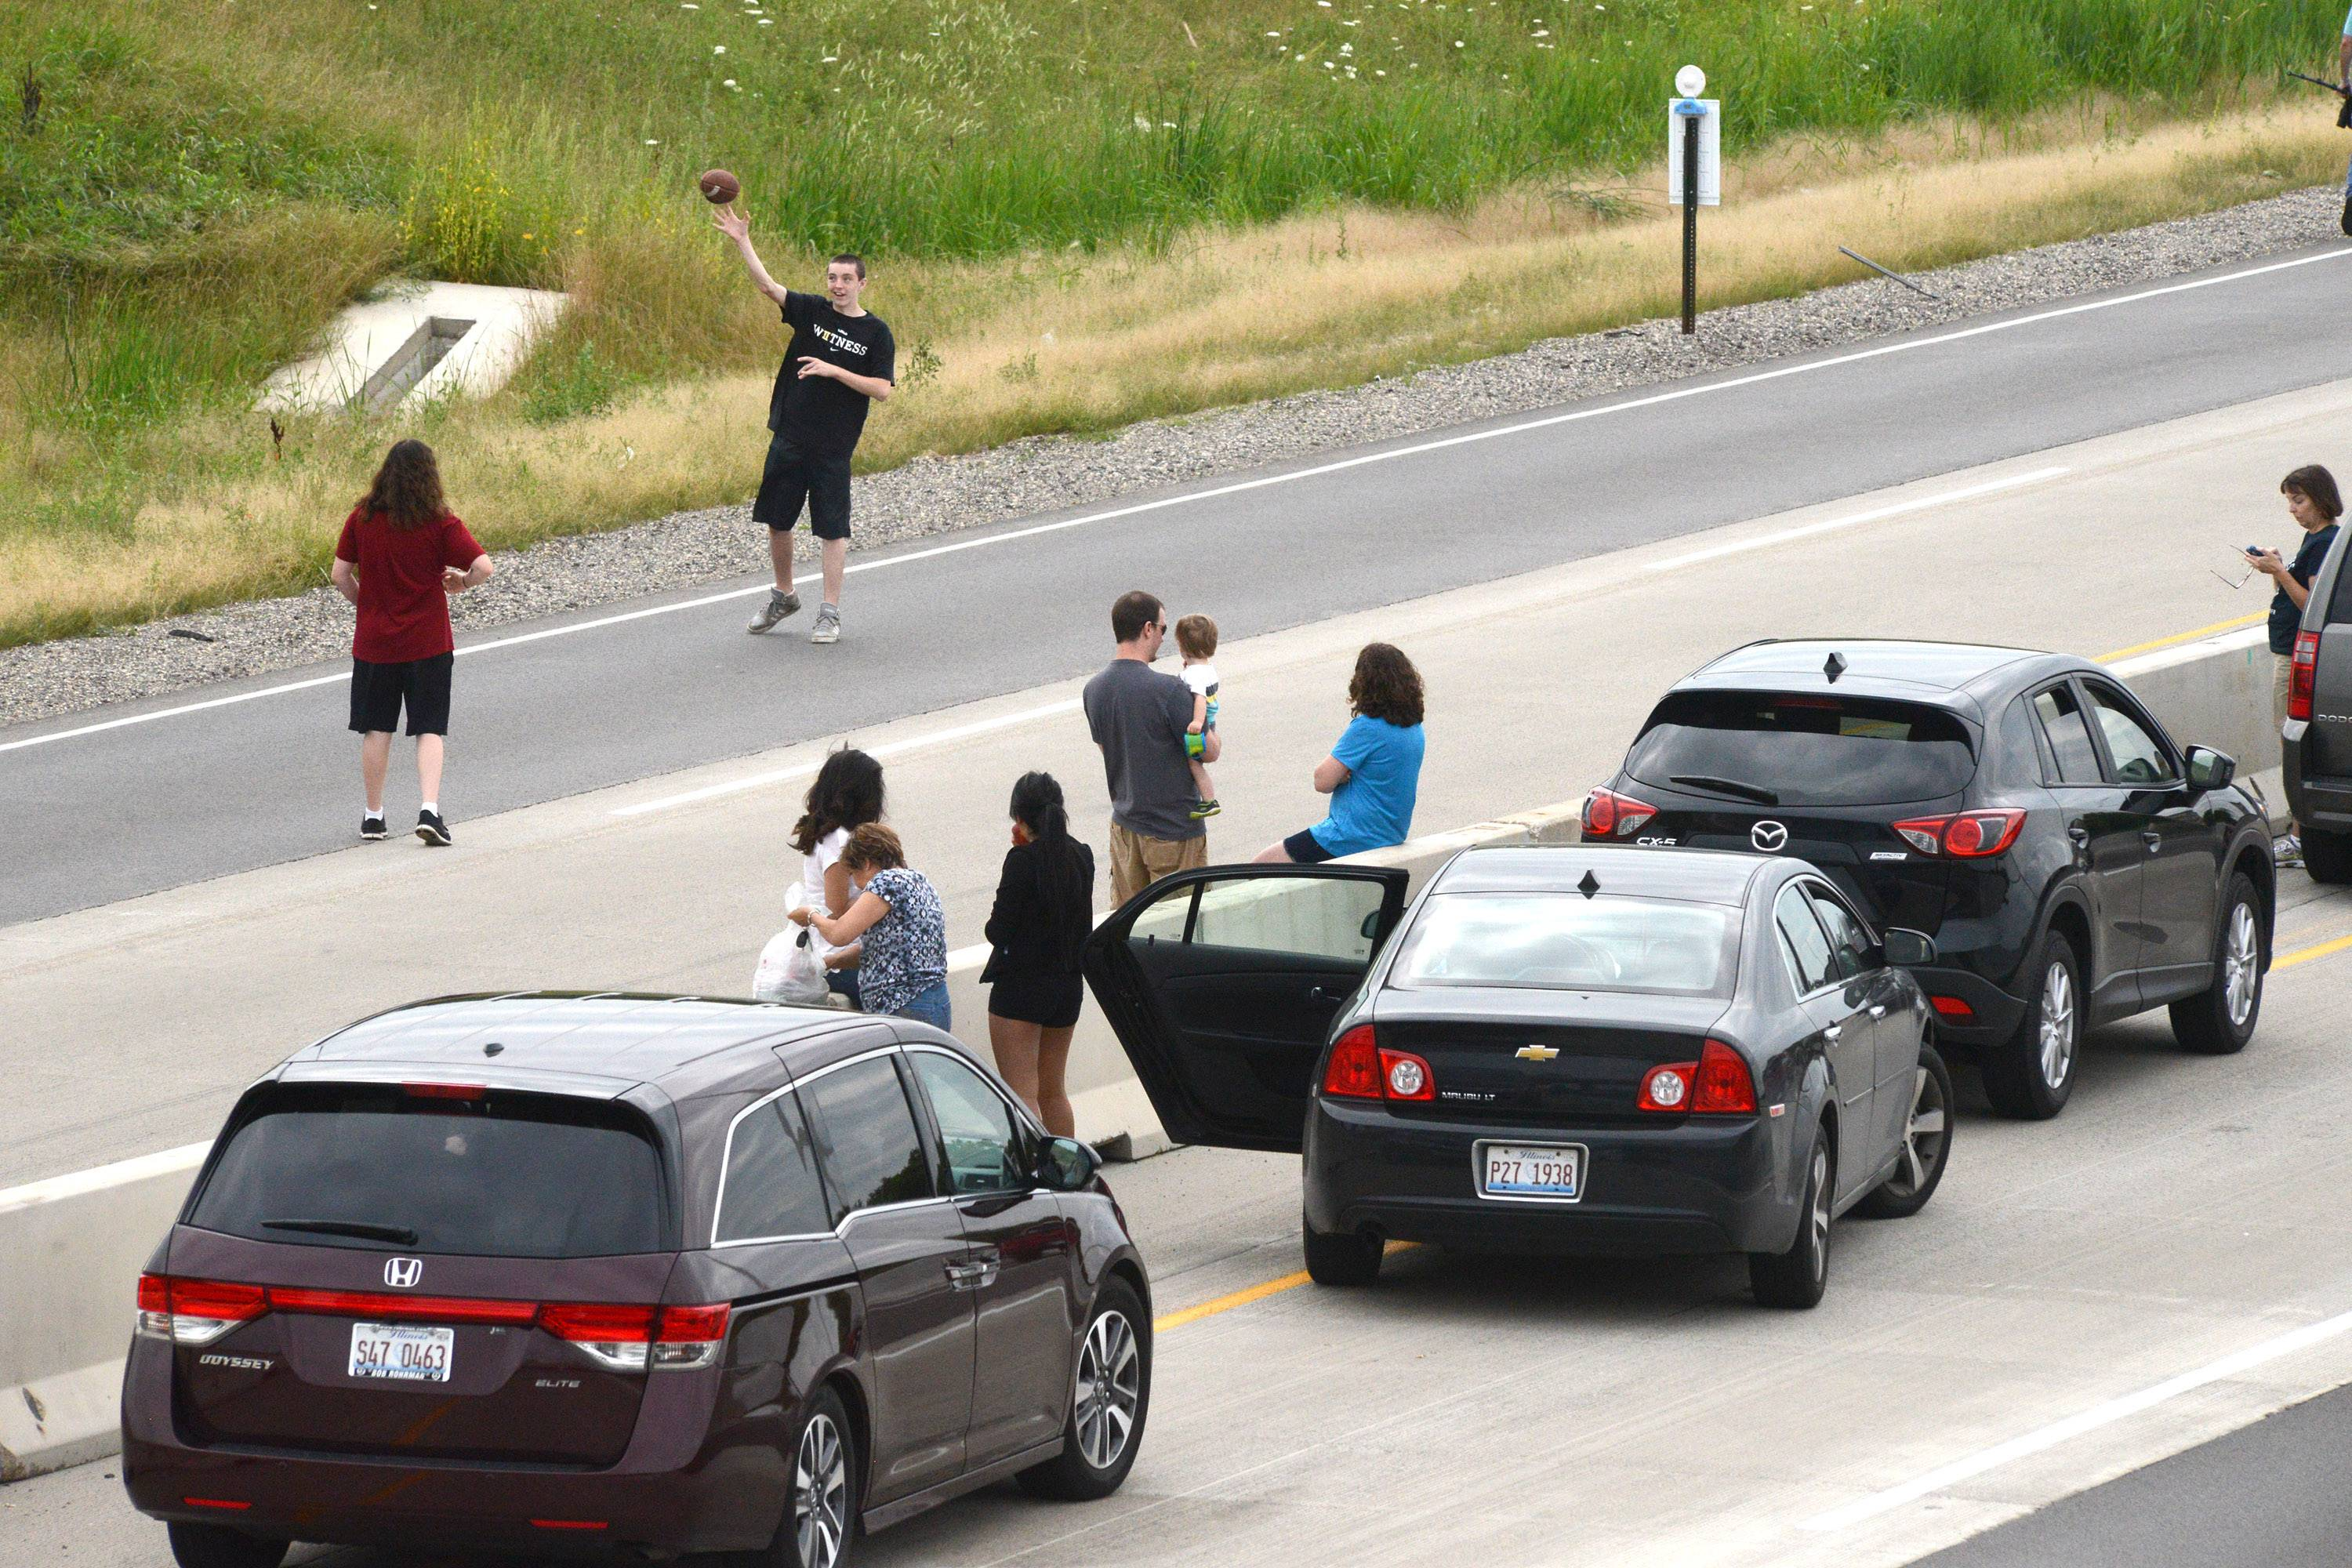 People play football in the blocked eastbound lanes of I-90 after a semitrailer truck engulfed in flames caused a major traffic backup.